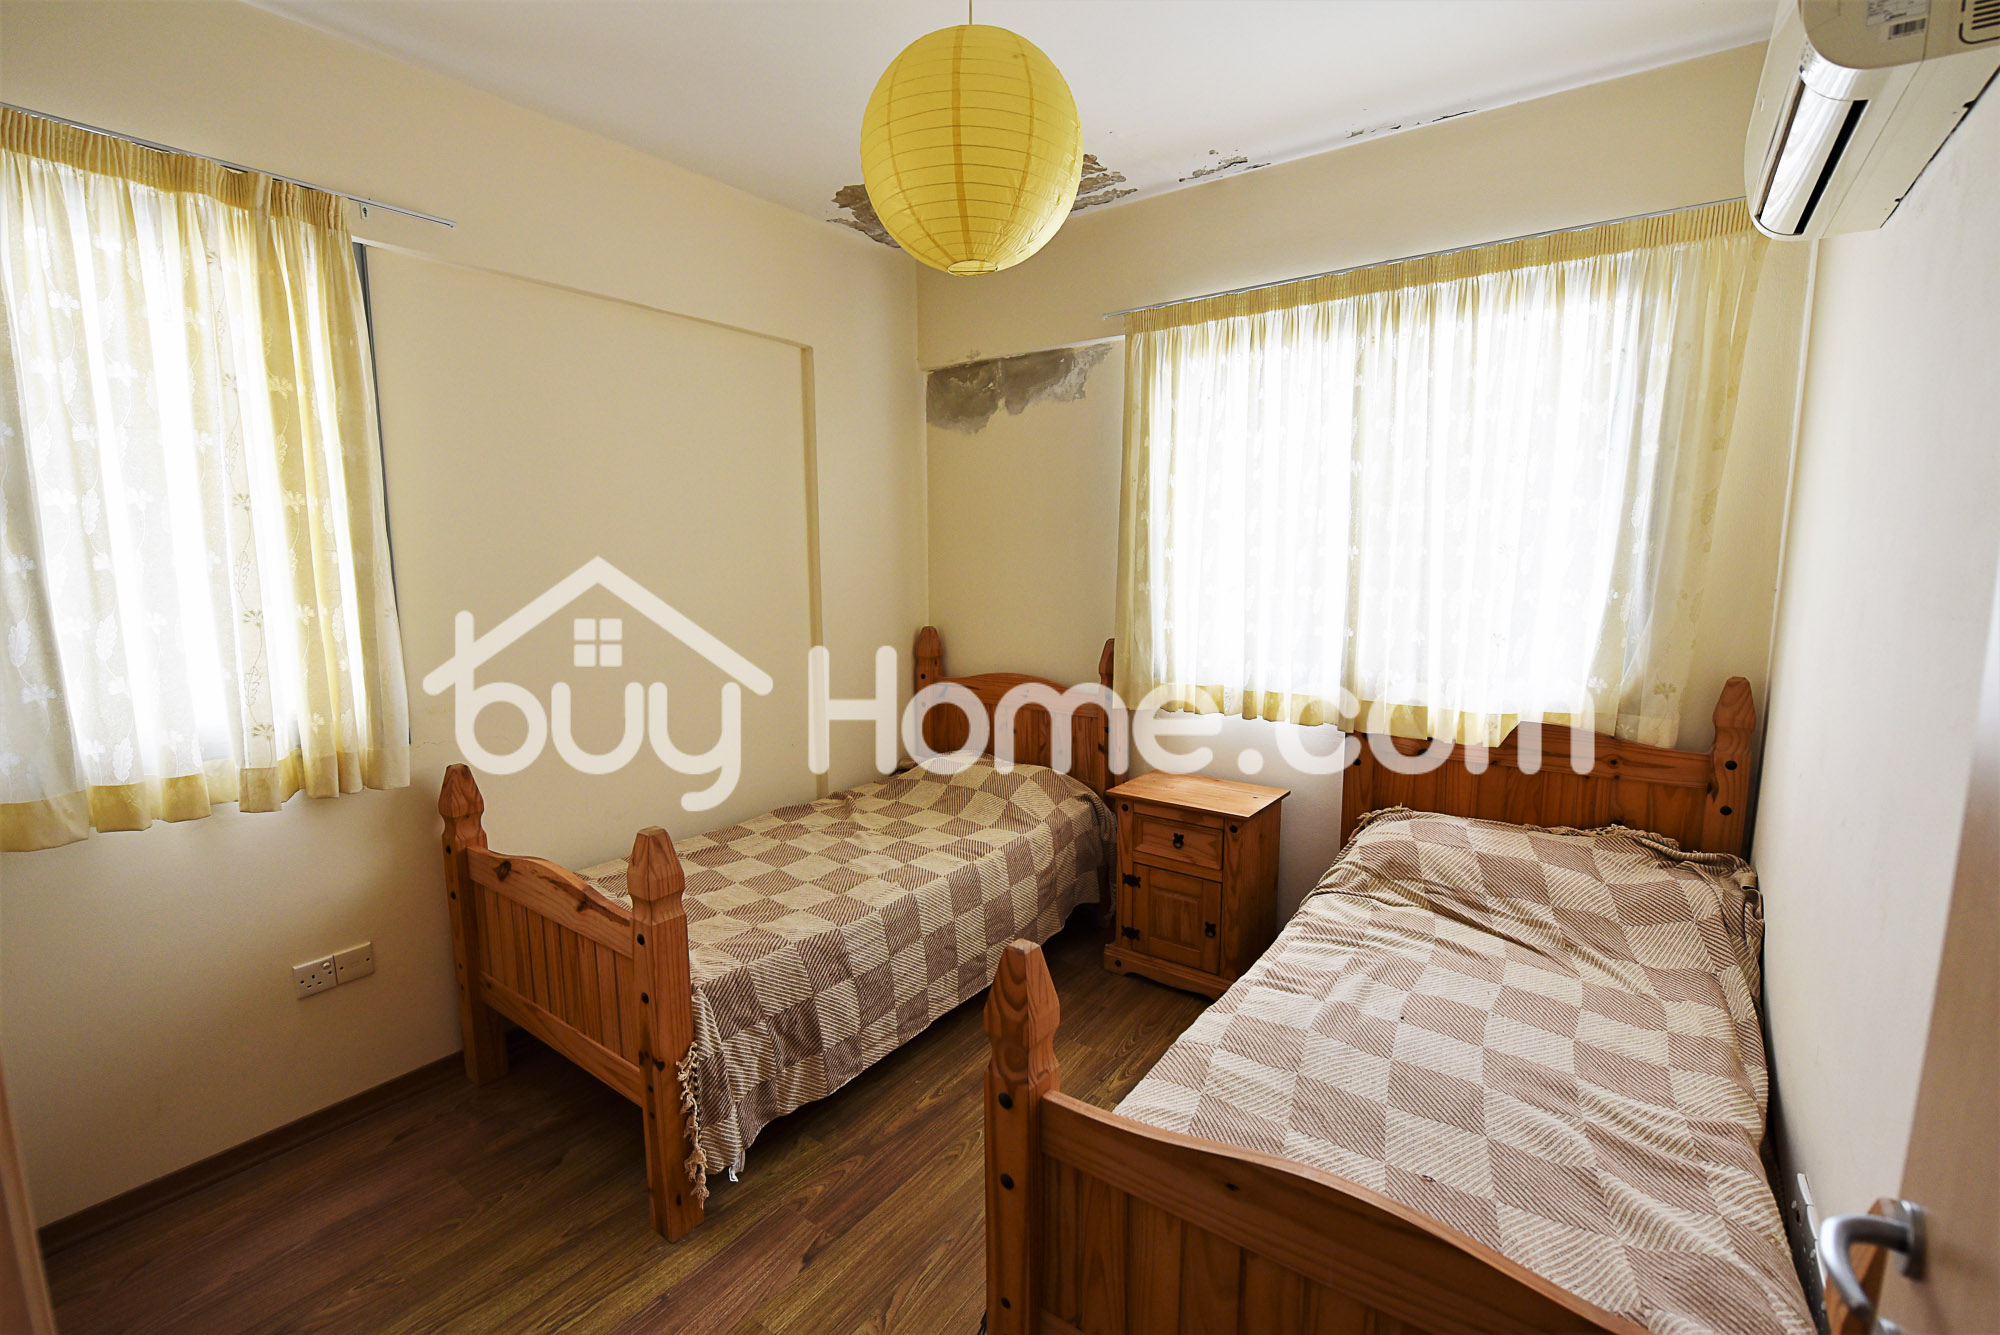 2 Bedroom Apartment with Communal Pool | BuyHome